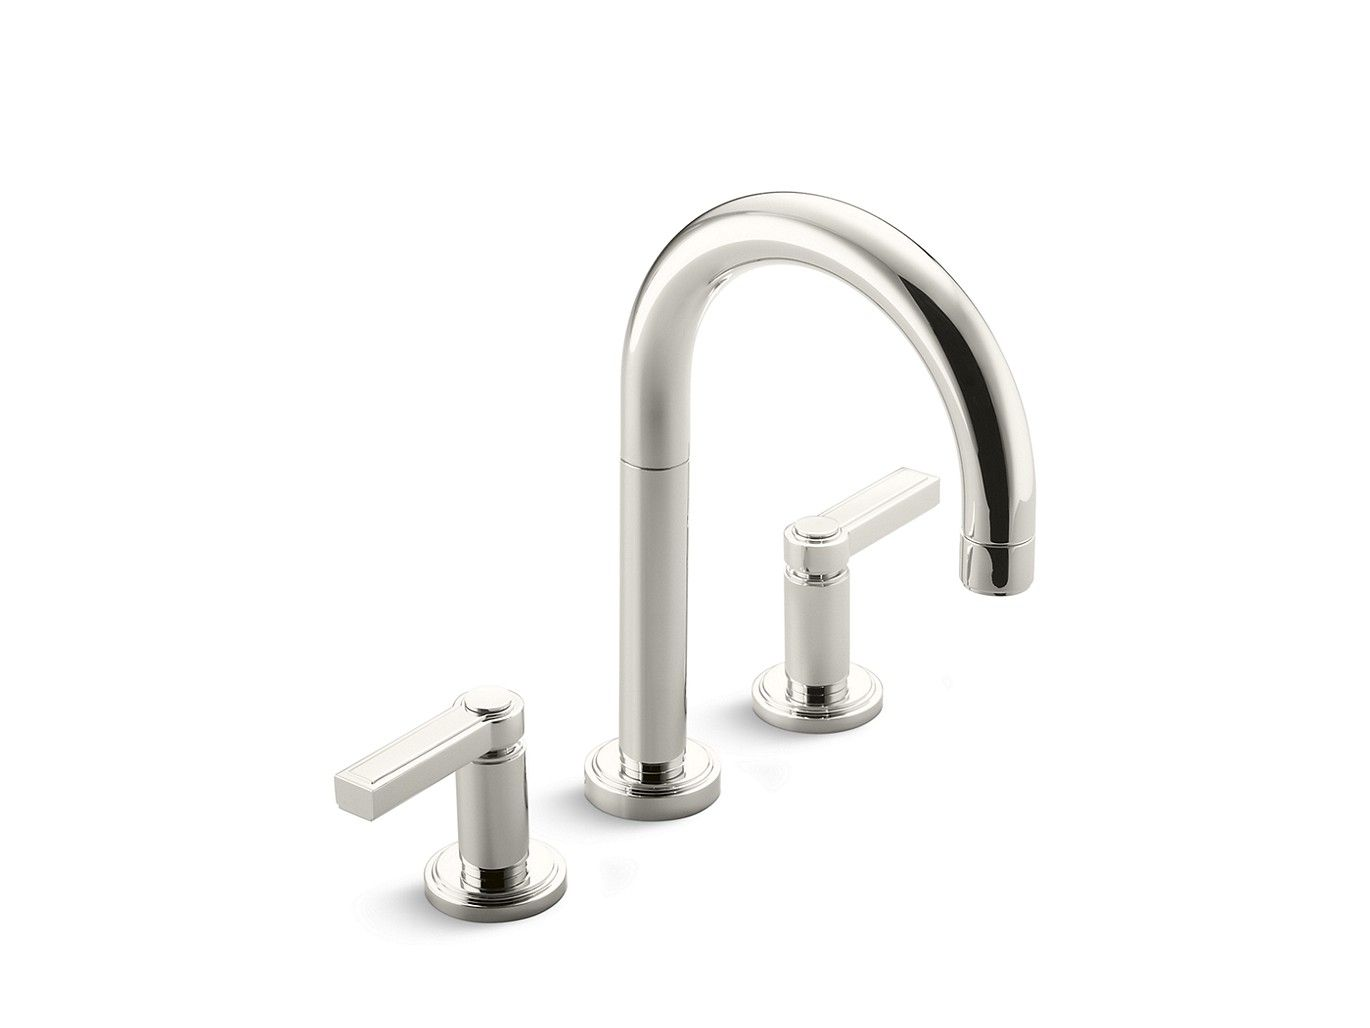 Sink Faucet Lever Handles With Images Sink Faucets Faucet Sink